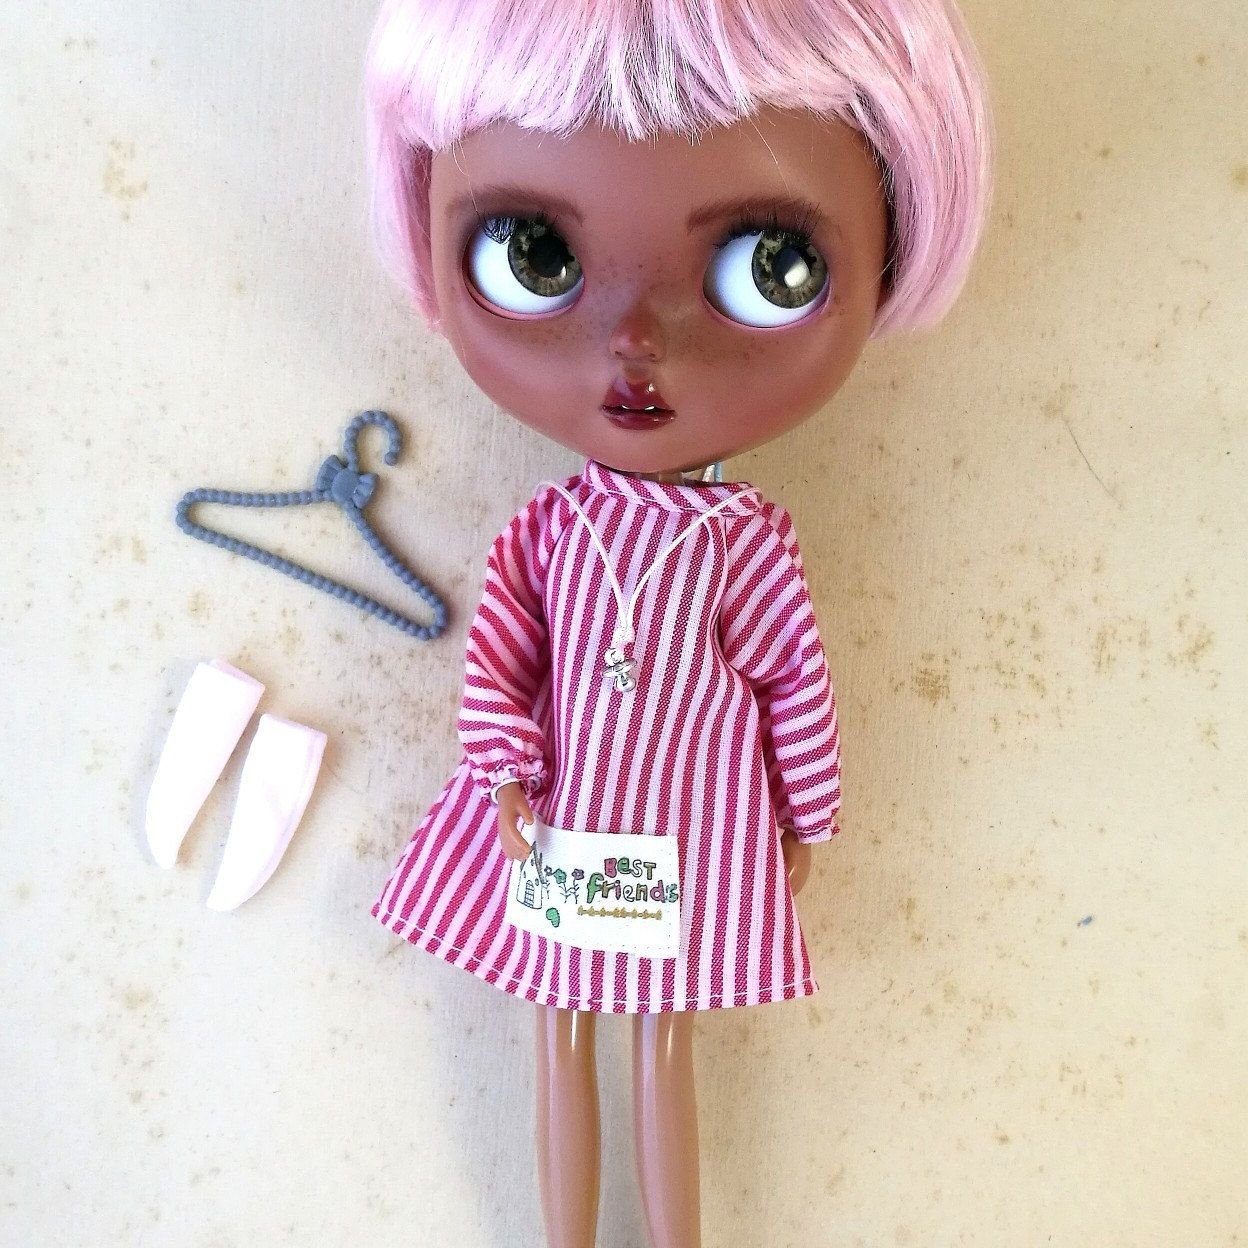 New Japan Pullip Blythe Licca Elly 9/'/' Doll Pink and White Uniform Doll Dress